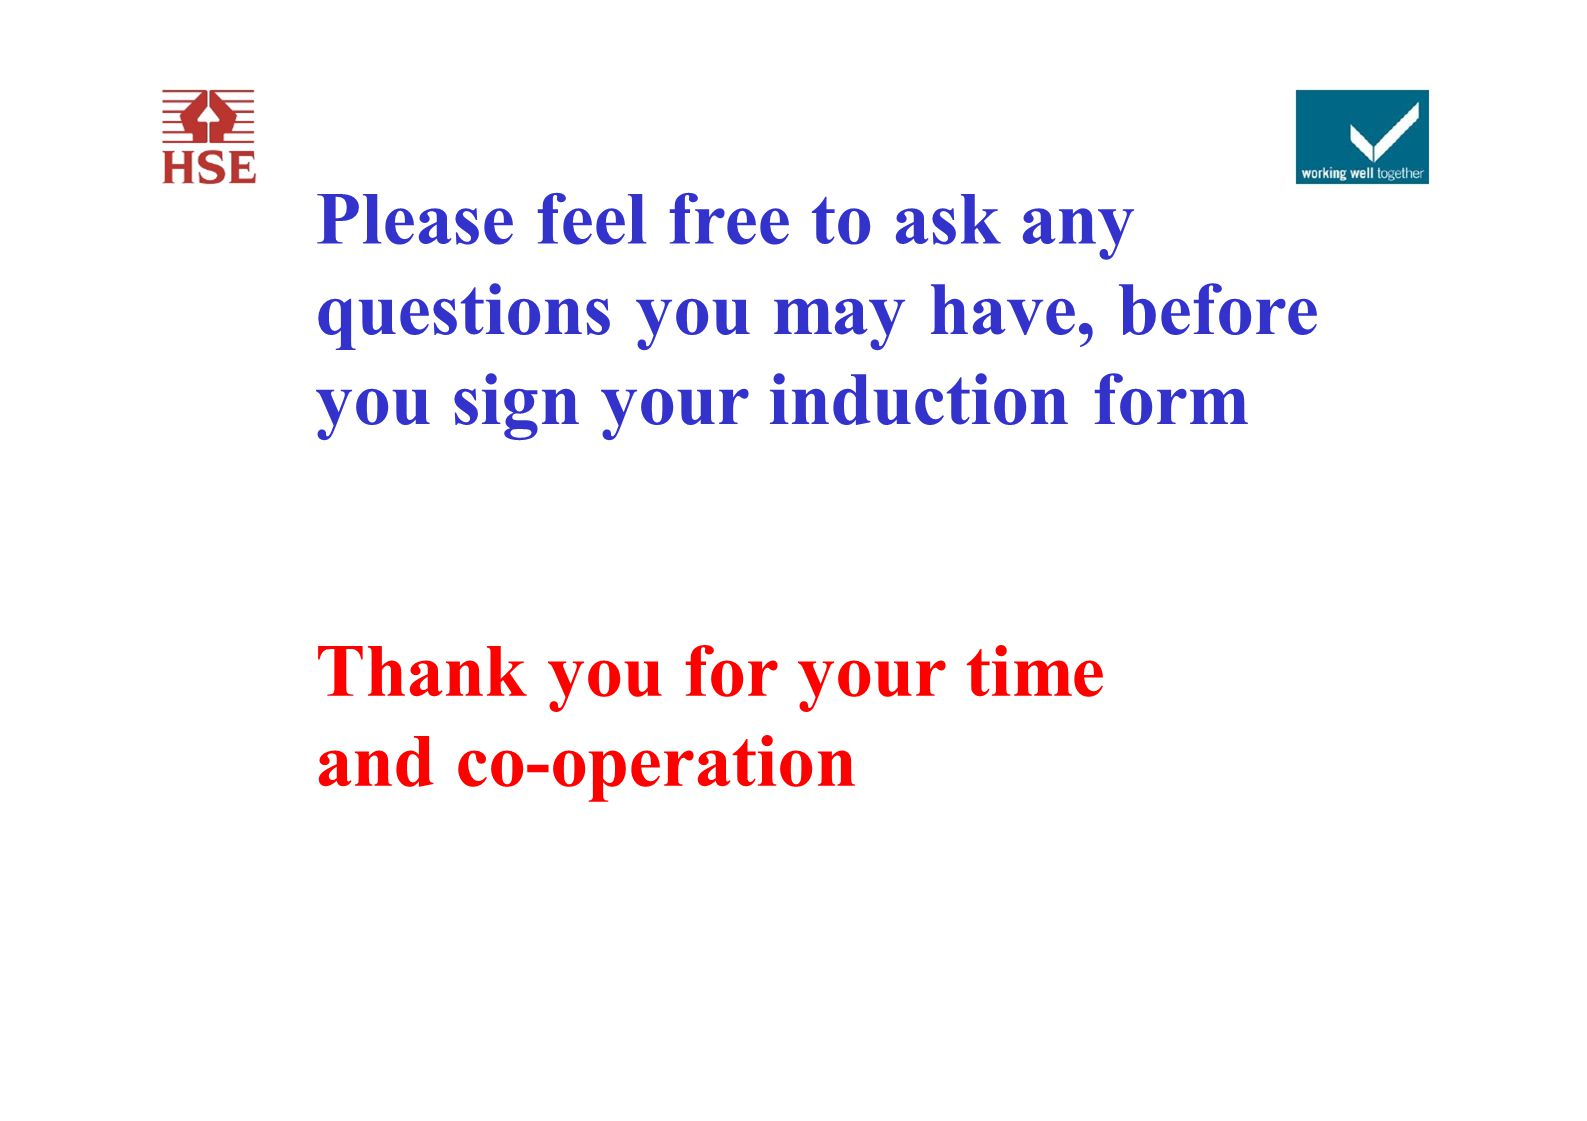 Please feel free to ask any questions you may have, before you sign your induction form Thank you for your time and co-operation